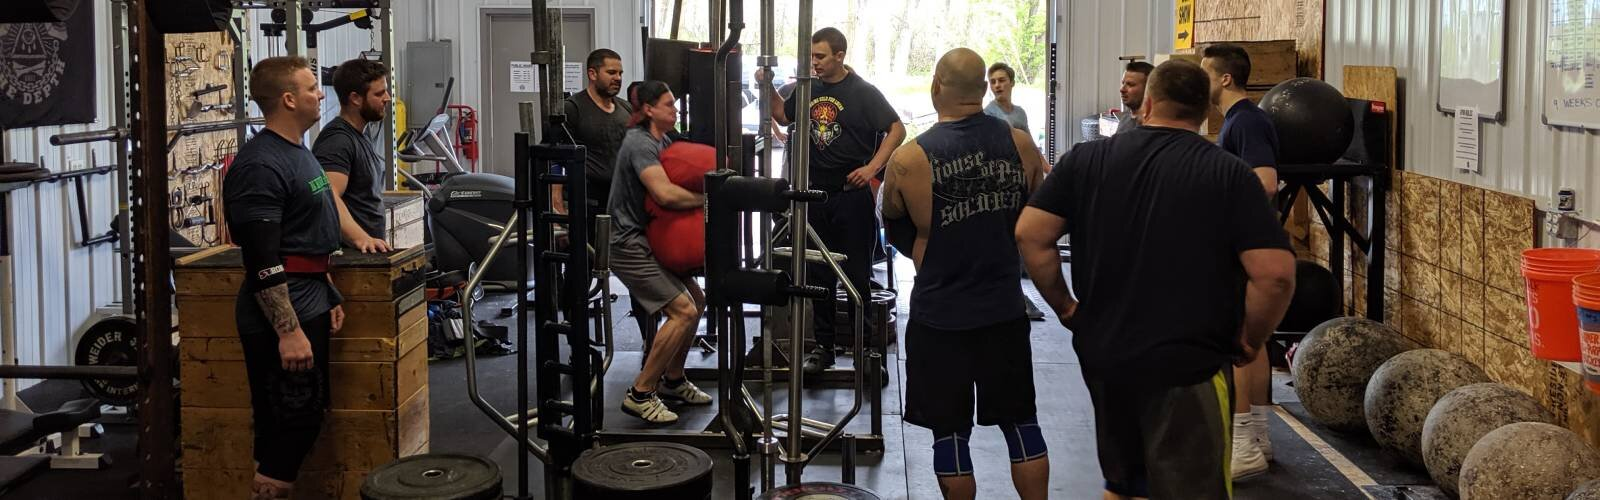 Eric Cedrone's Iron & Stone Strength gym has become the homefront for WNY's strongman community.